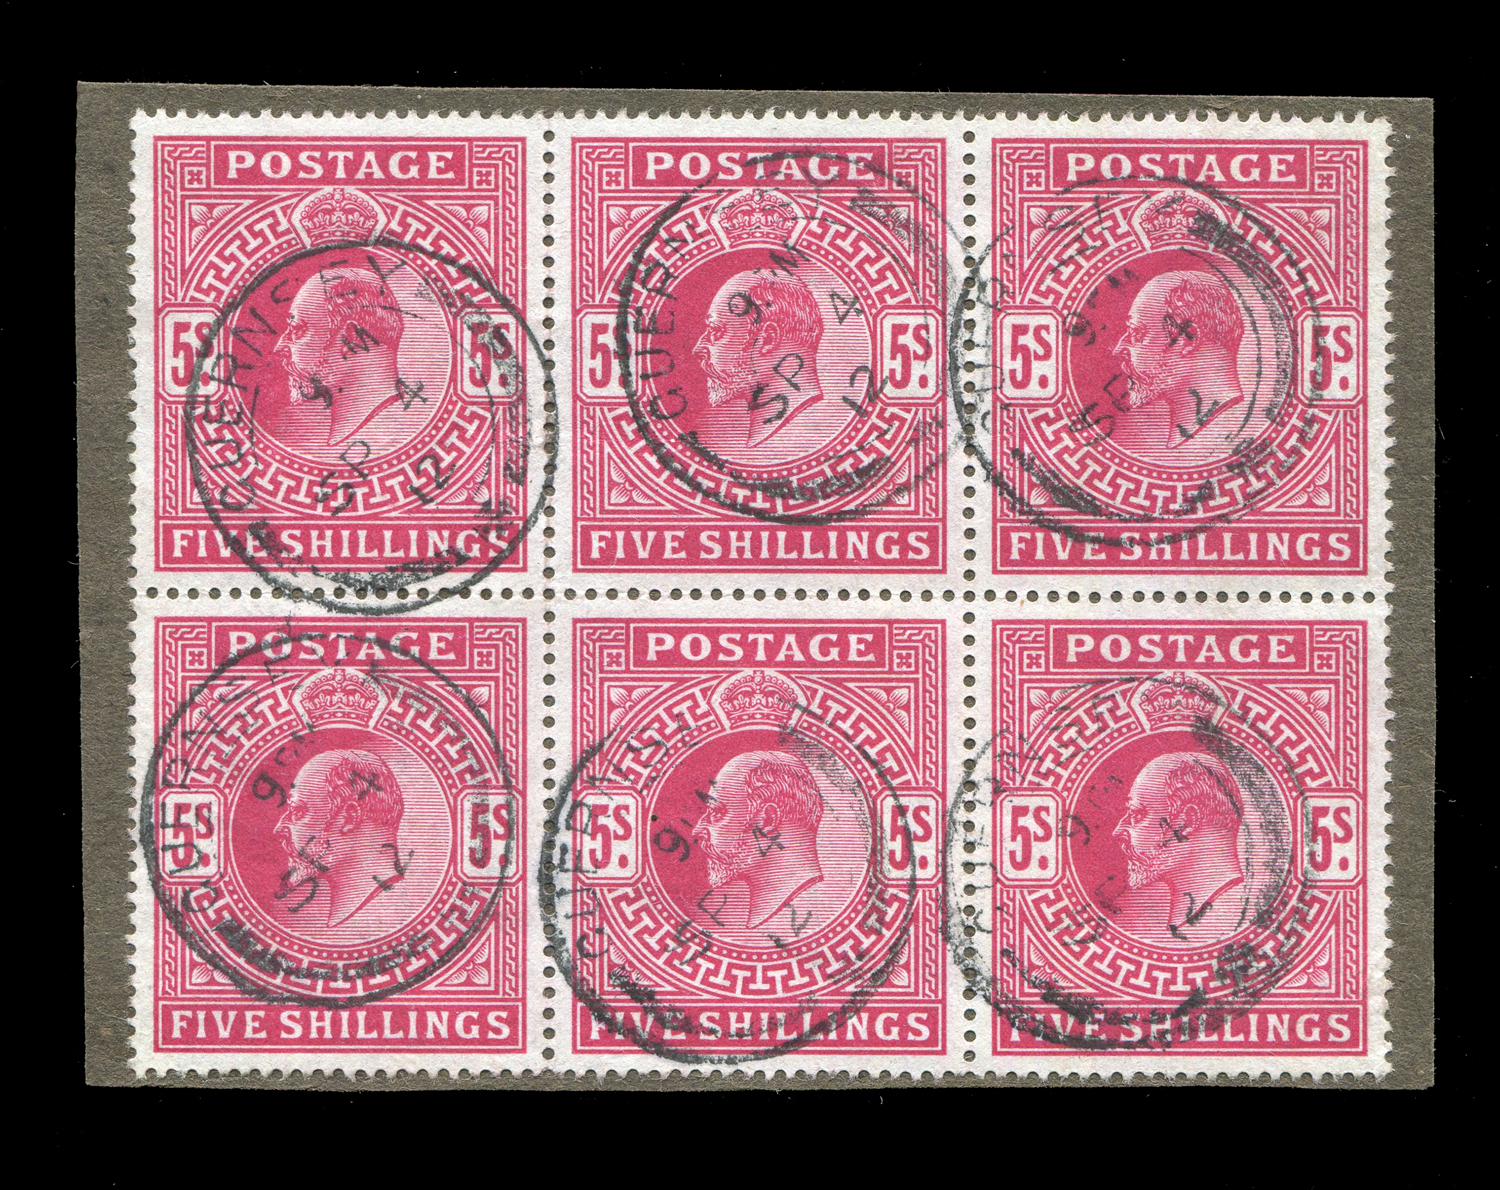 Lot 3006 - A Great Britain block of six on piece 1912 5 shillings Somerset House printing stamps (SG 318), very